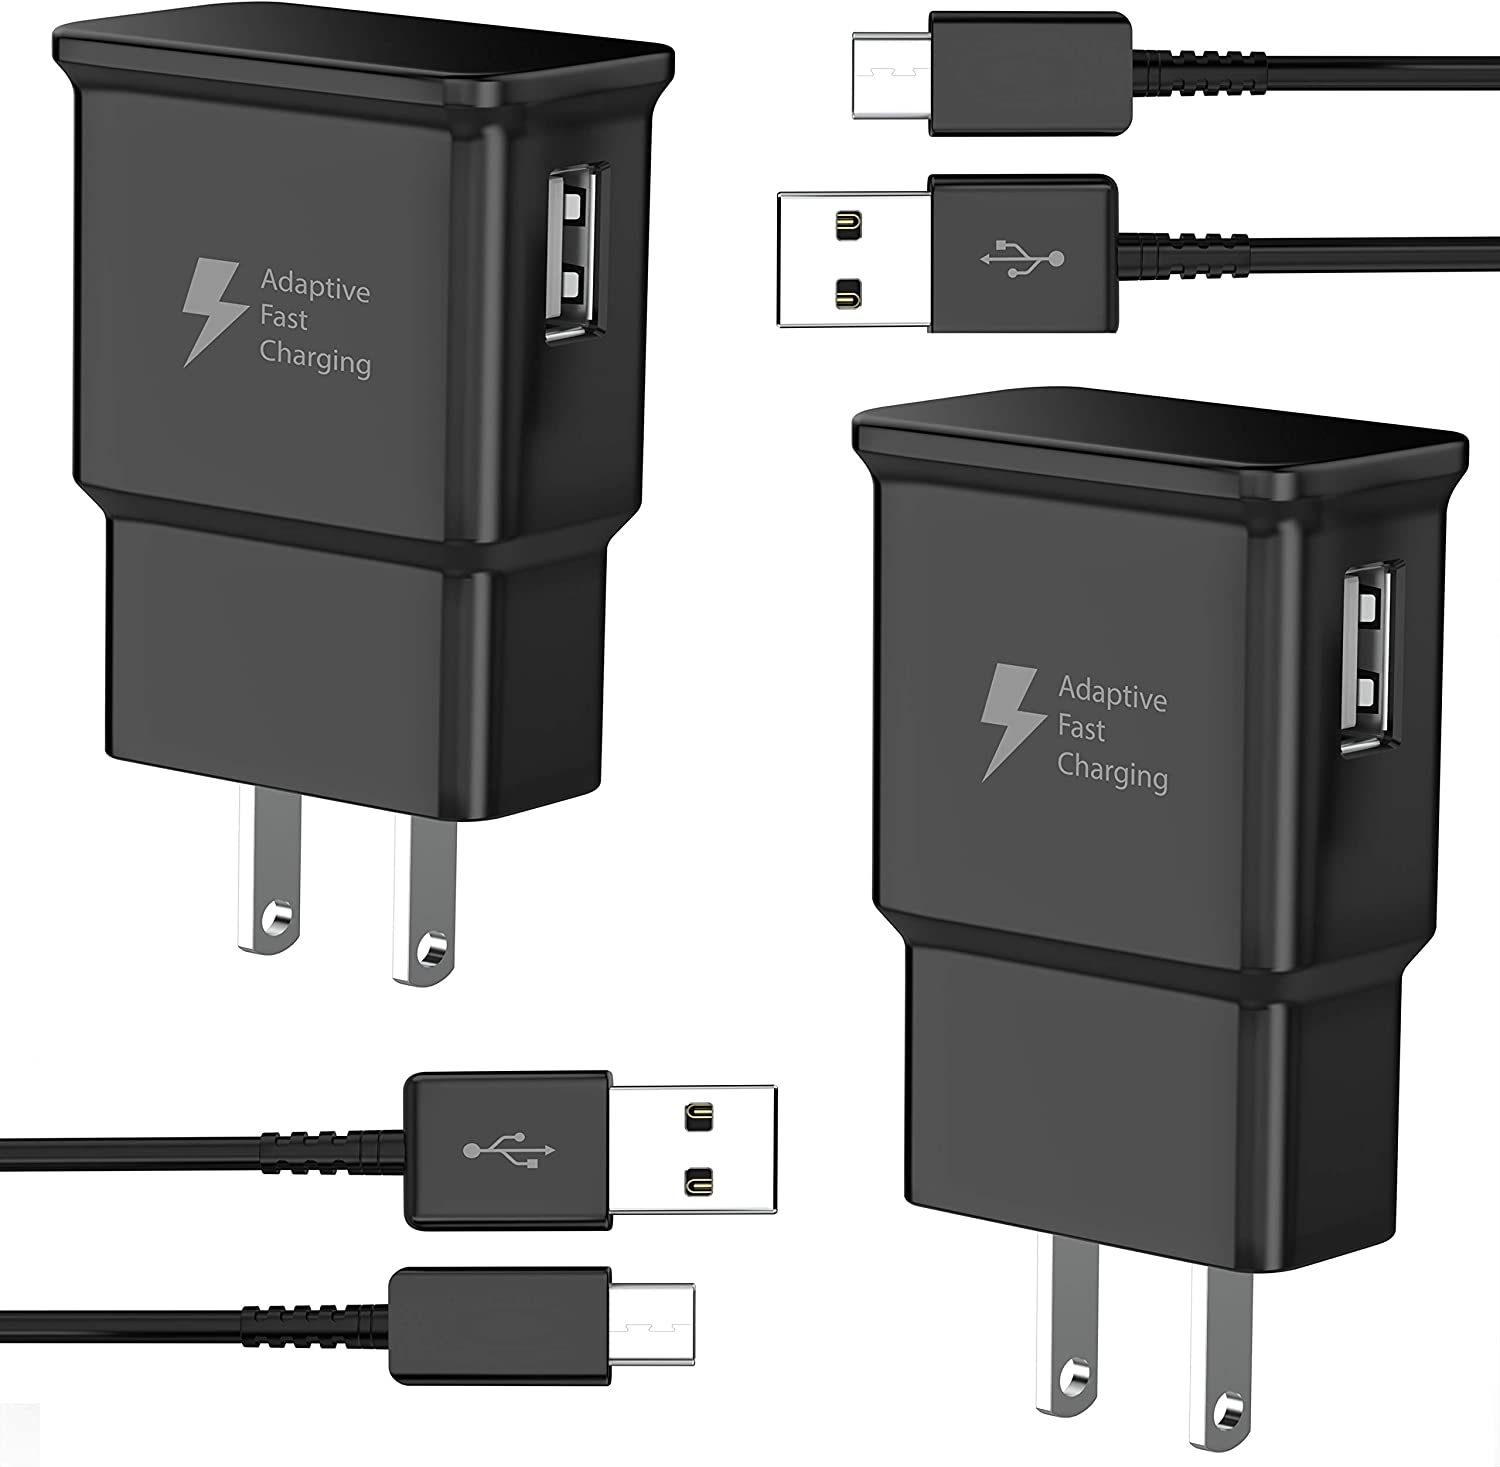 TT&C 6.6ft 2 Pack Adaptive Fast Charger kit $11.04